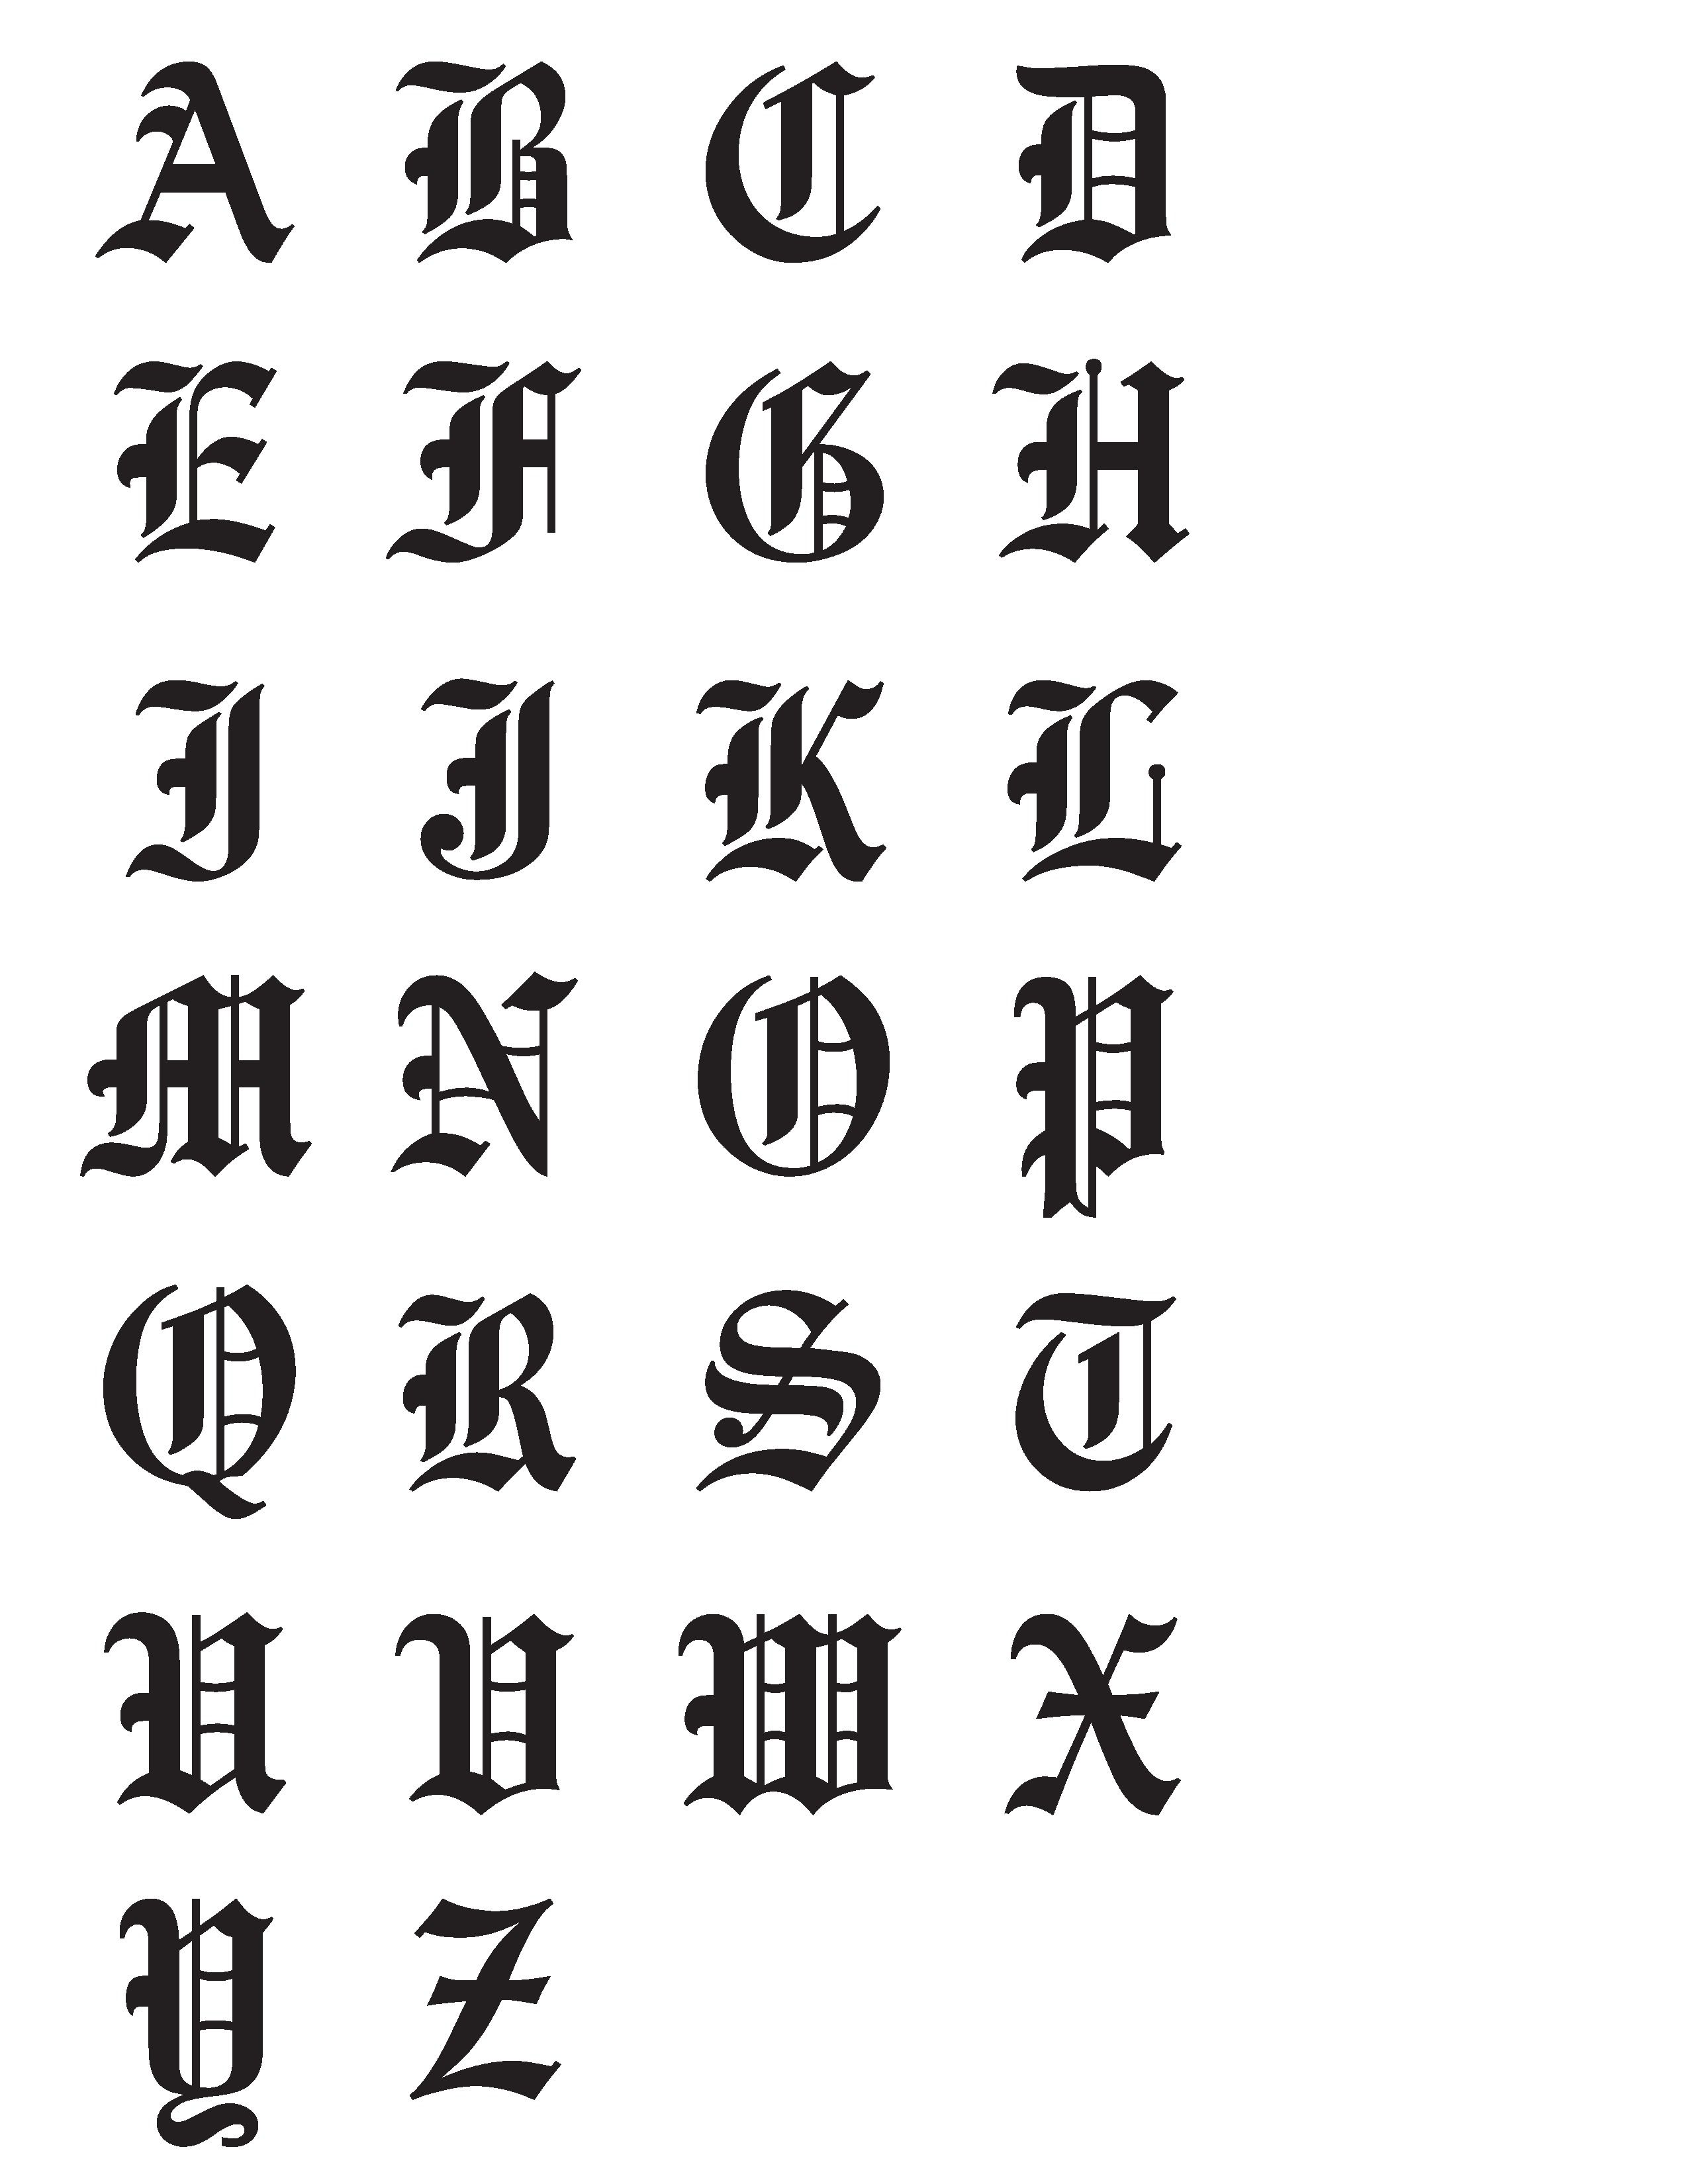 Old English Need To Find A Good Chart For The Lowercase